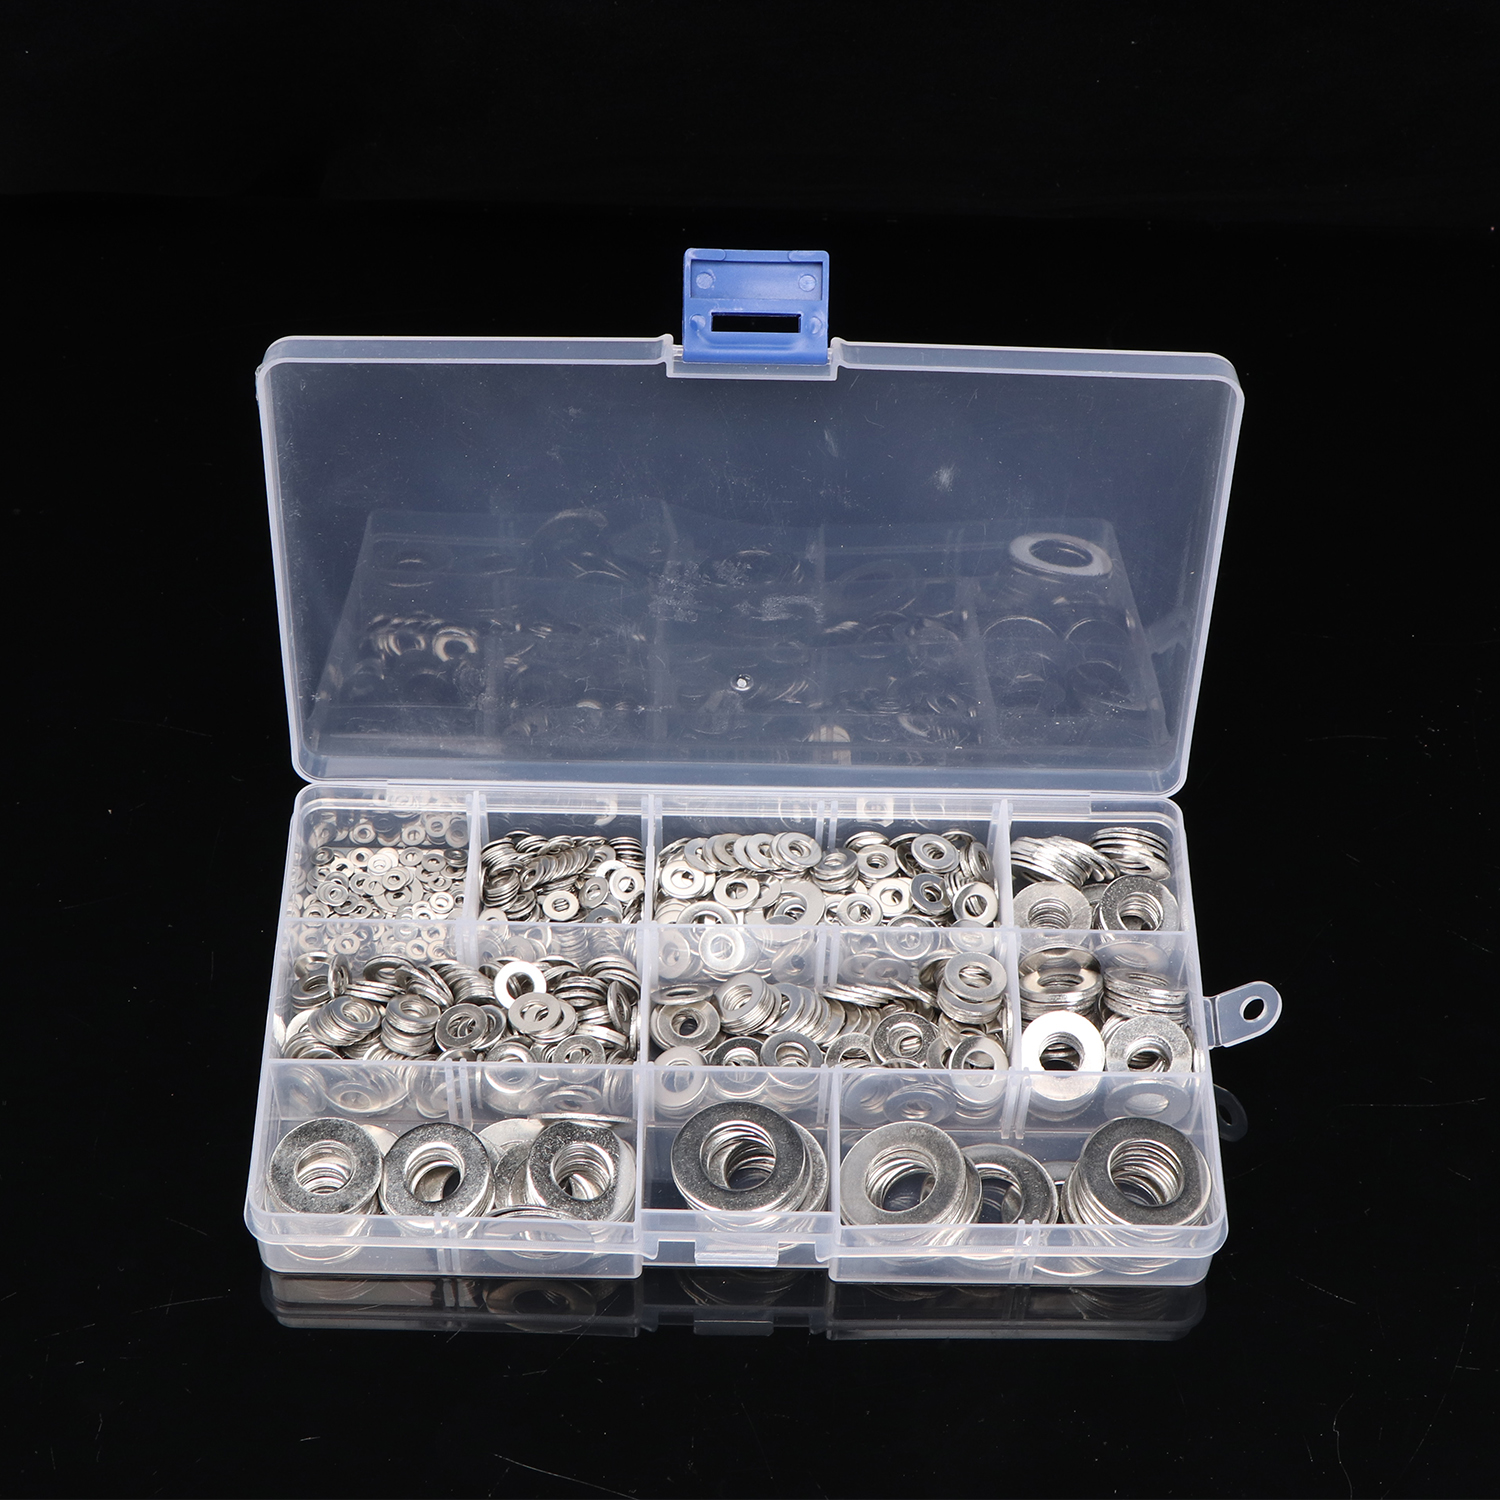 1010pcs Stainless Steel <font><b>Washer</b></font> Set M2 M3 M4 M5 M6 <font><b>M8</b></font> M10 M12 <font><b>Washer</b></font> Flat <font><b>Washers</b></font> Ring Plain <font><b>Washer</b></font> Gaskets Assortment Kit image